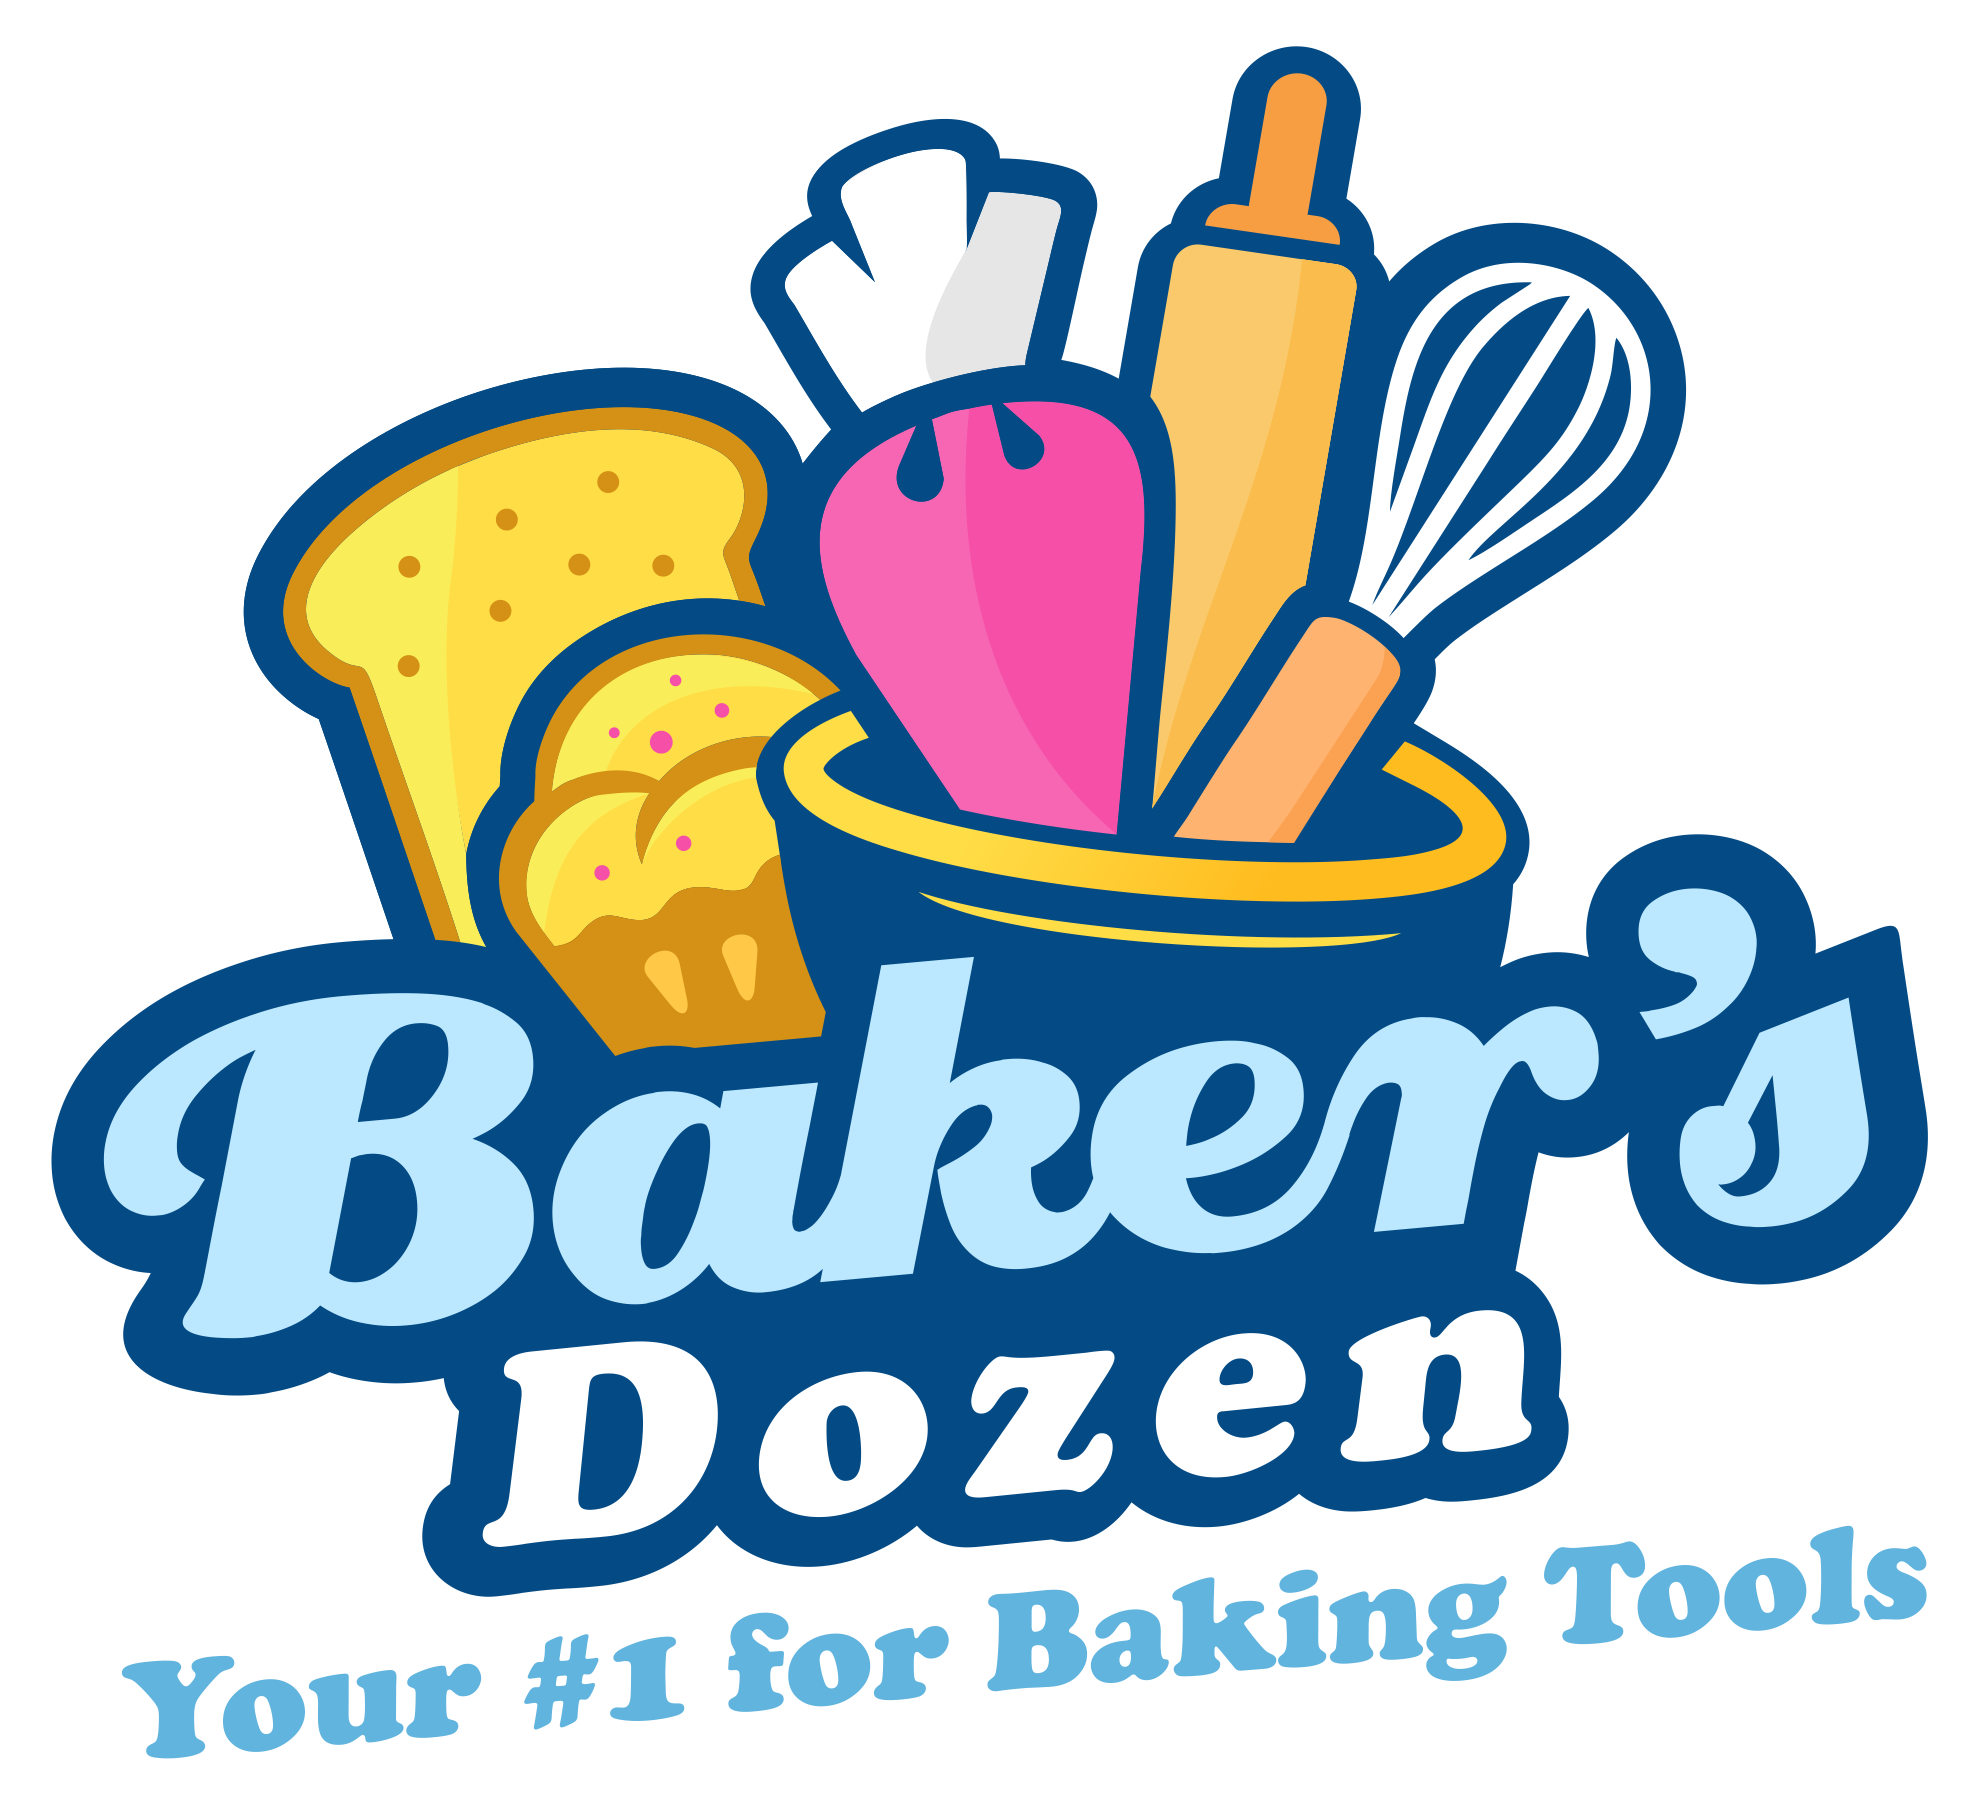 Baker drawing cooking. Add an extra measure